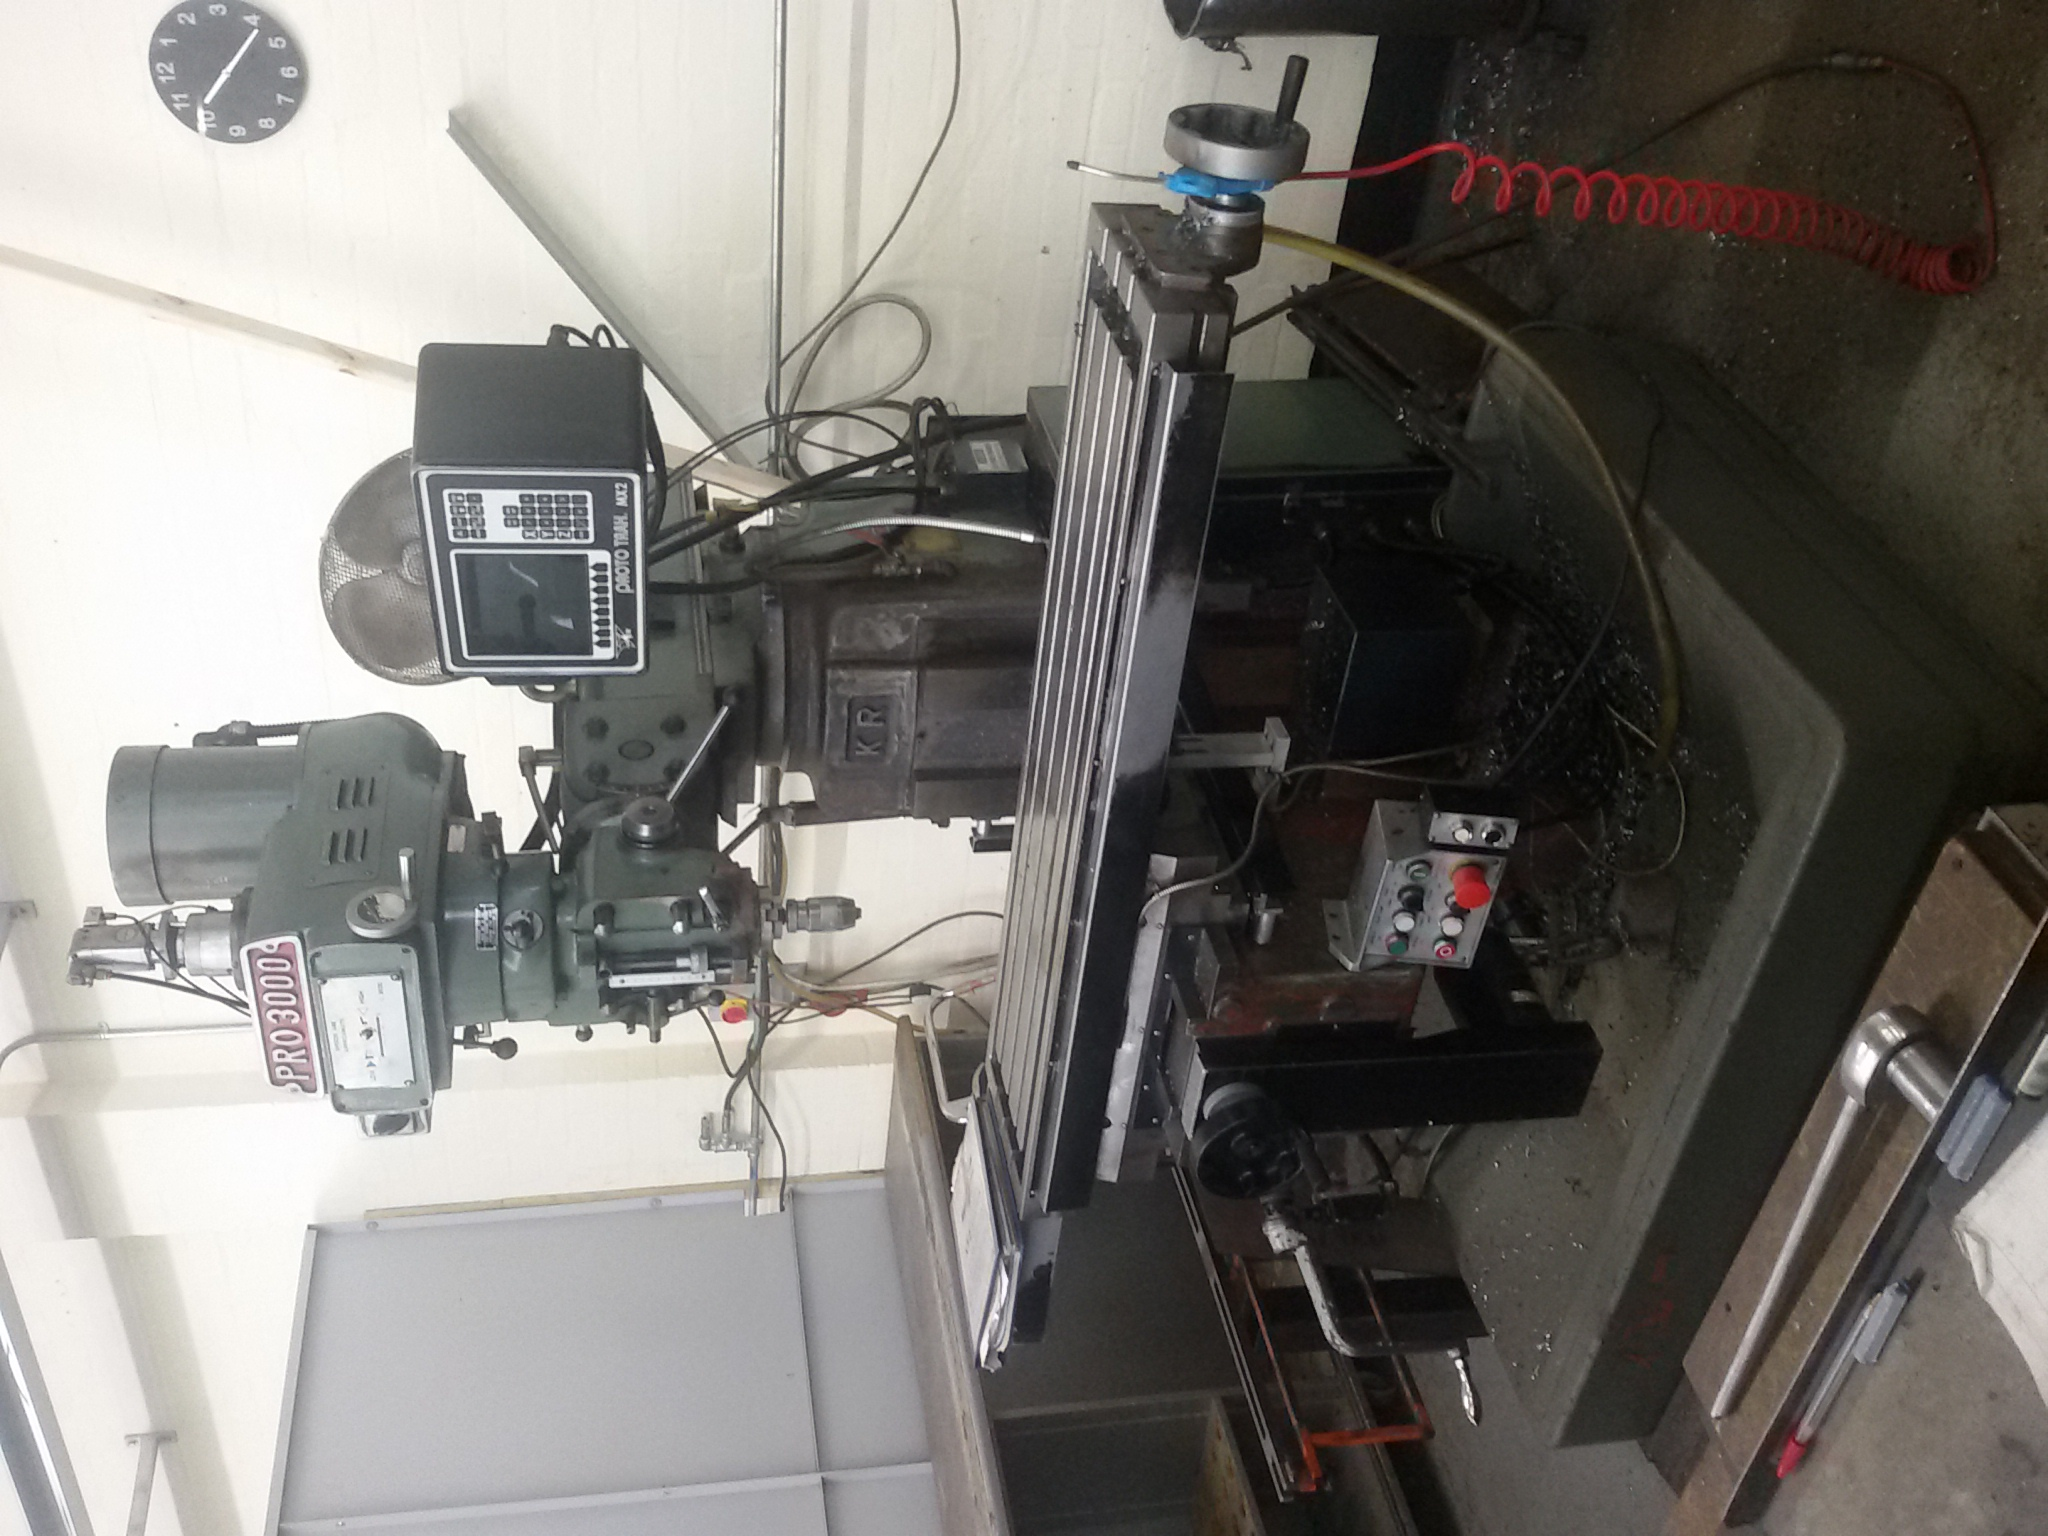 Xyz Pro 3000 2 Axis Cnc Milling Machine Electrical Wiring X Y Z Preview Image